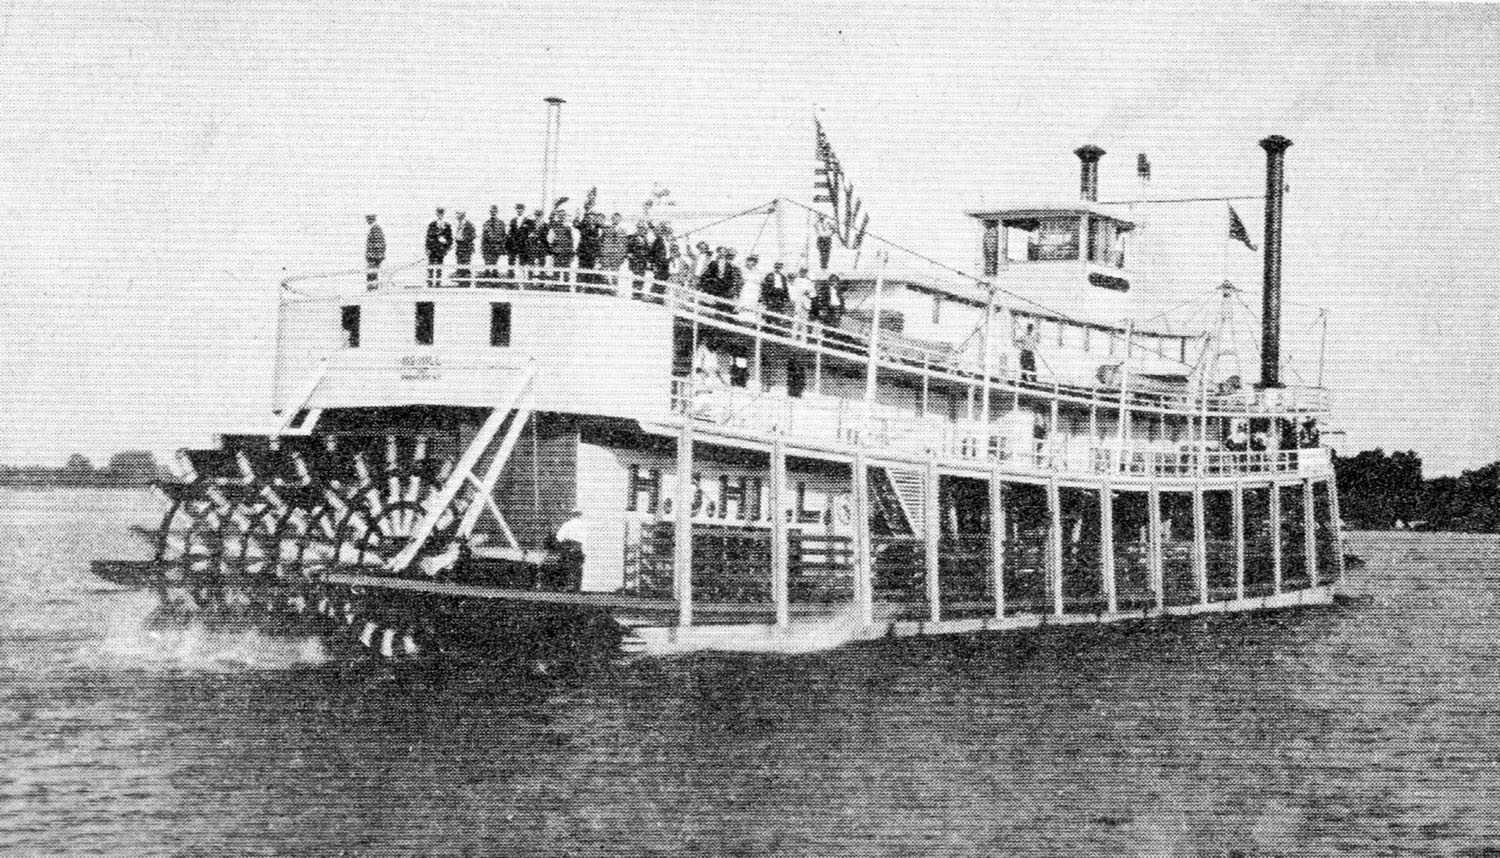 The H.G. Hill on its trial trip in June 1919. (Keith Norrington collection)